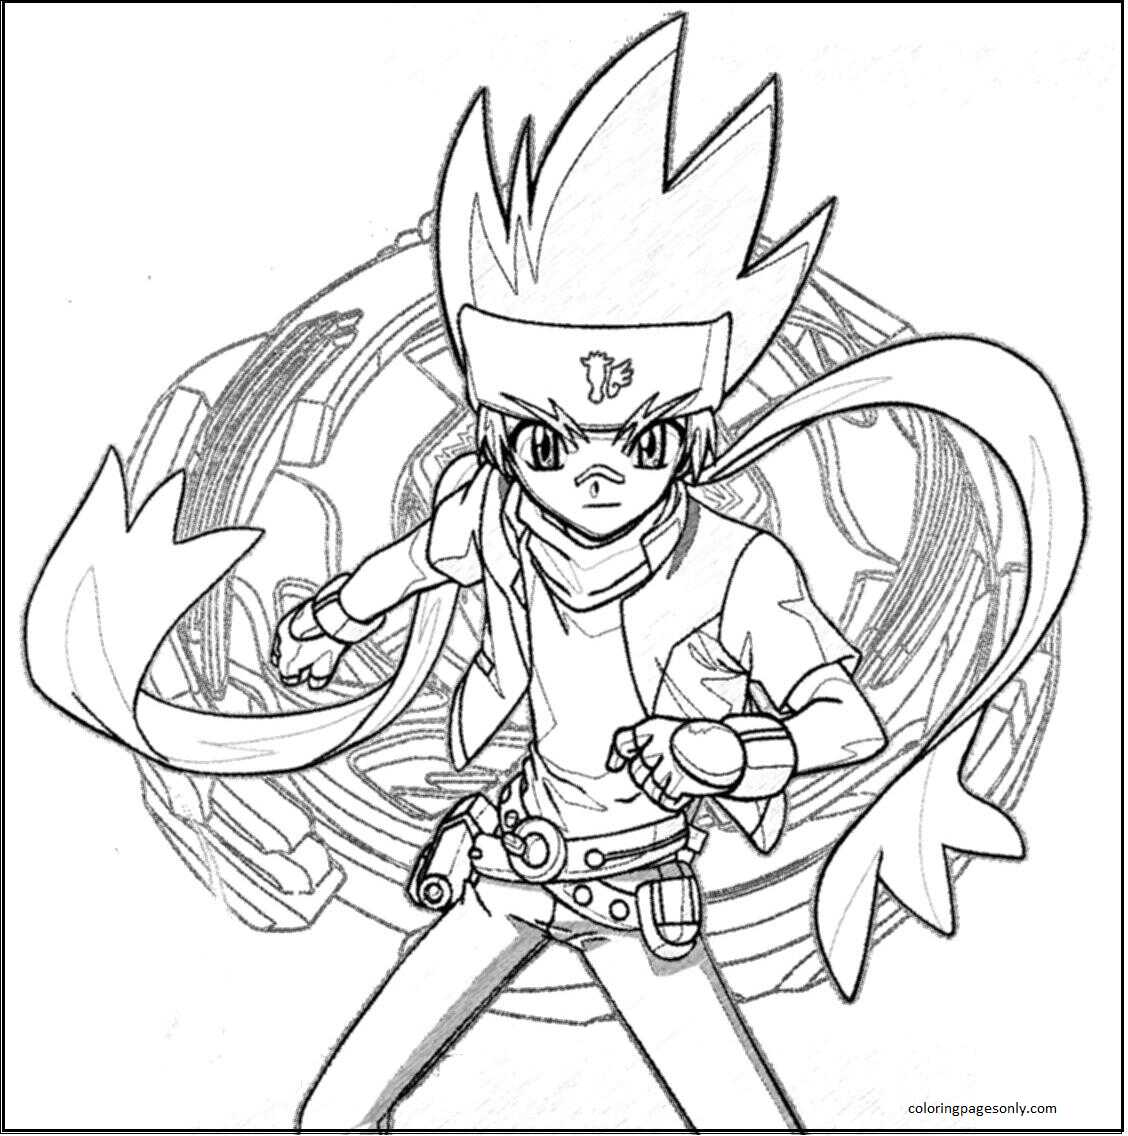 Beyblade Burst 10 Coloring Page